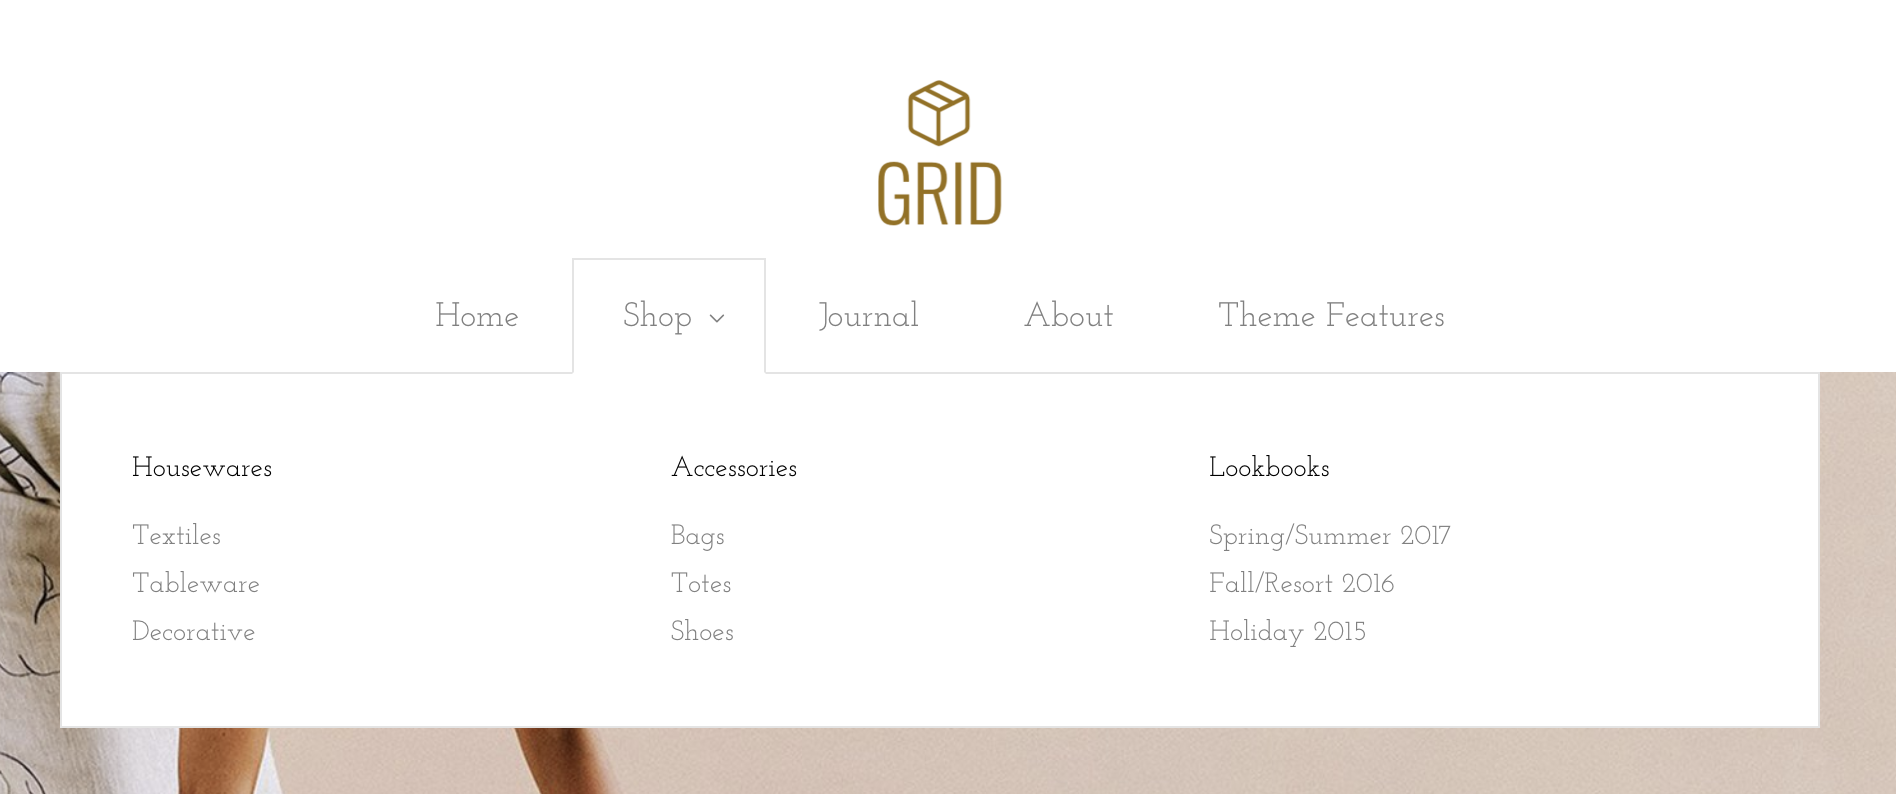 Mega-nav in Grid Bright demo